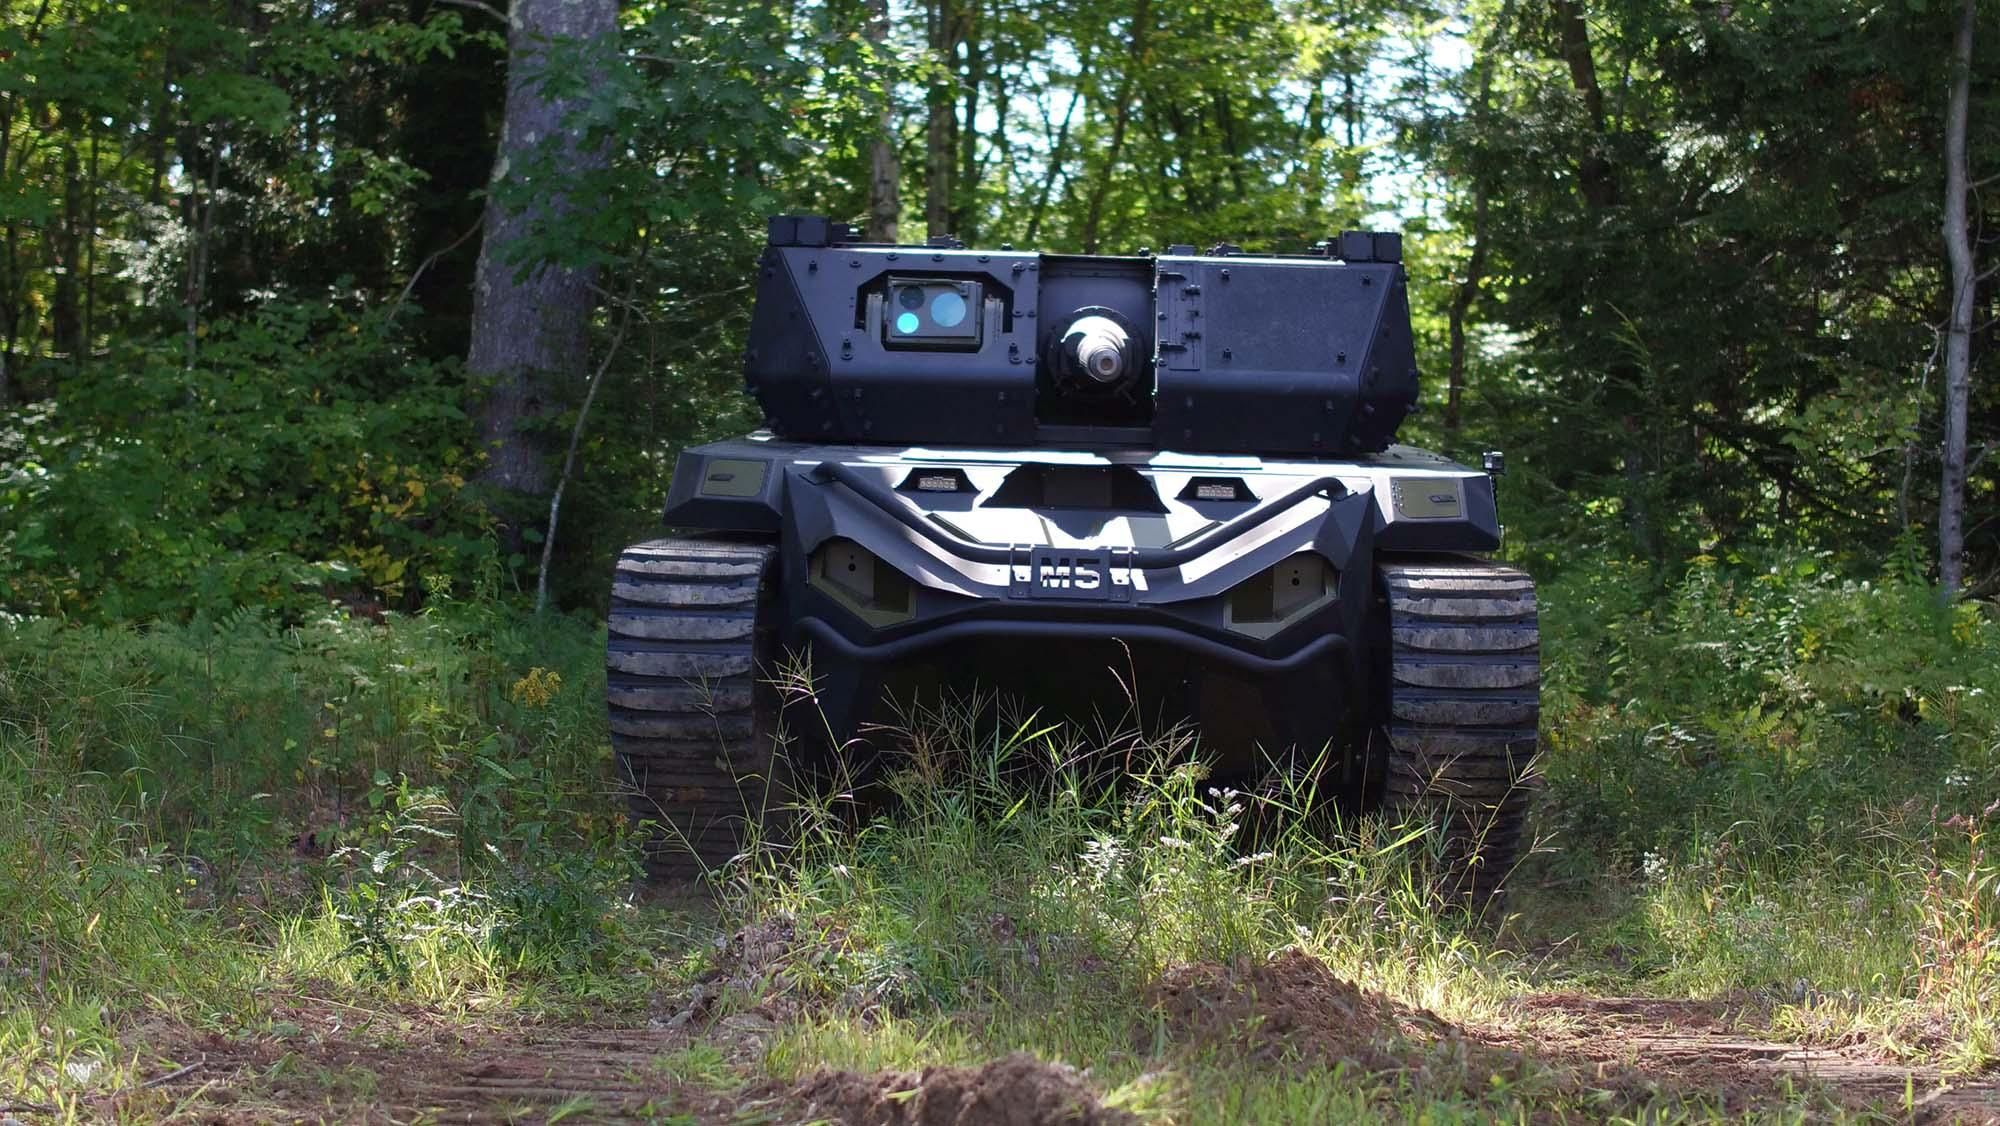 The Ripsaw M5 Could Become the Army's First Robo-Tank